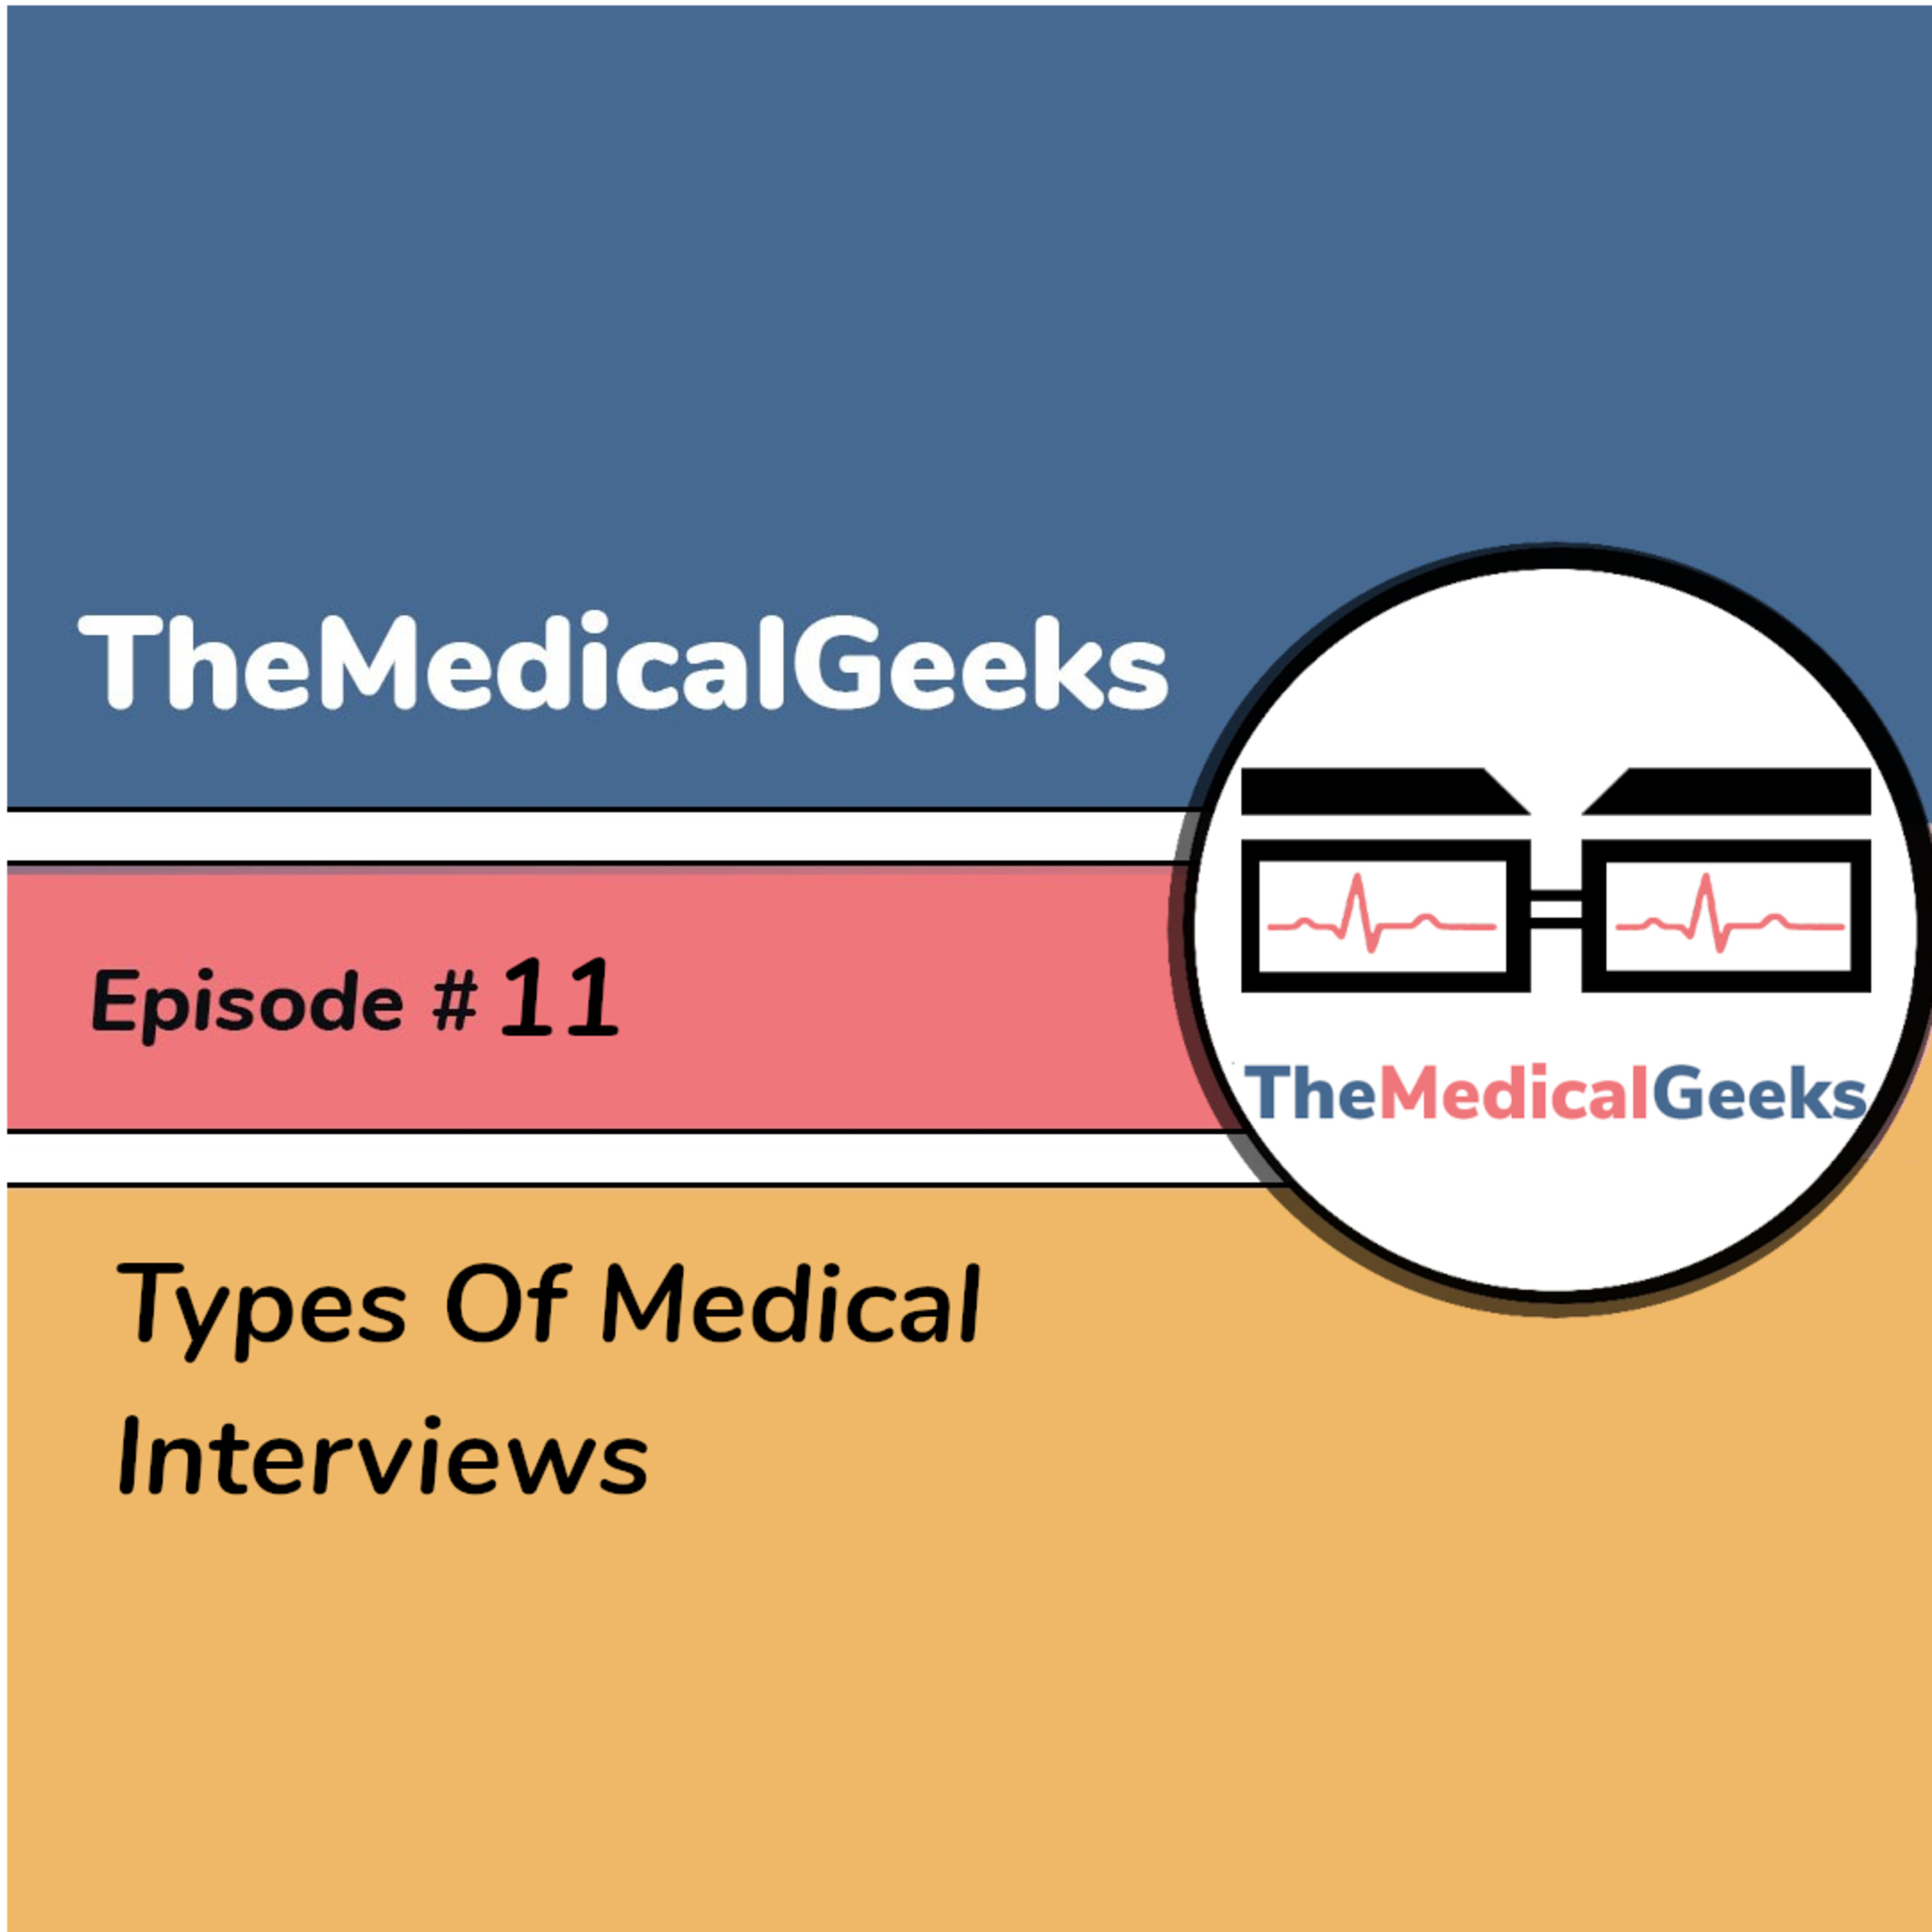 #11 Episode 11: Types Of Medical Interviews